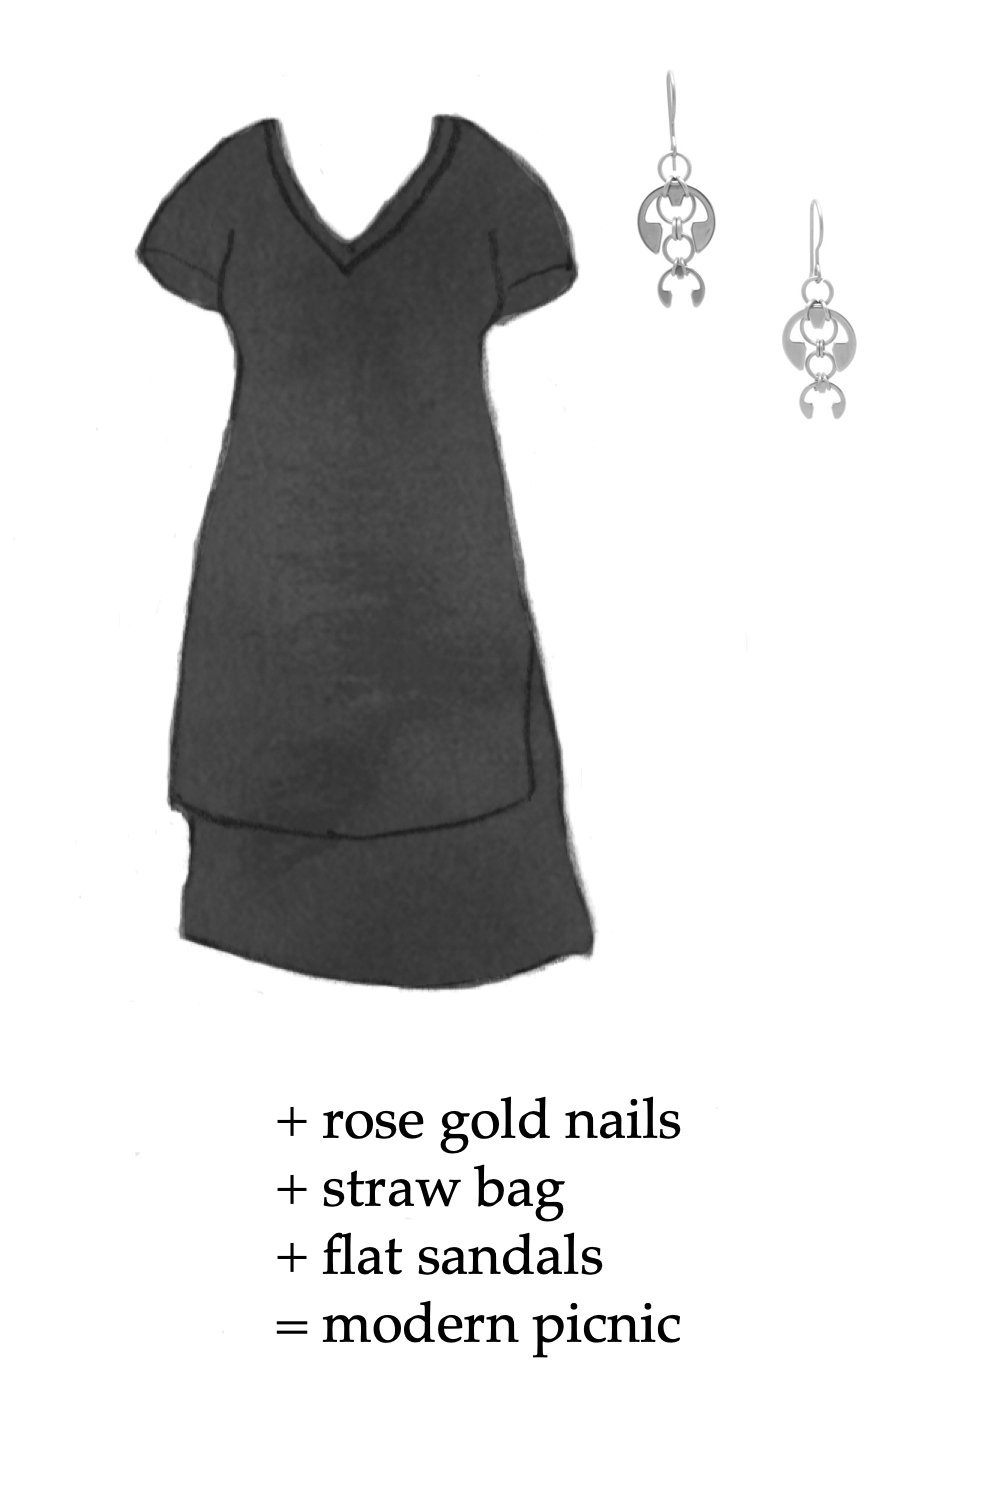 Outfit idea featuring a style sketch of the Tesino Washed Jersey Dress by Universal Standard in black and the Short Fuchsia Earrings by Wraptillion. Text on image reads: + rose gold nails + straw bag + flat sandals = modern picnic.